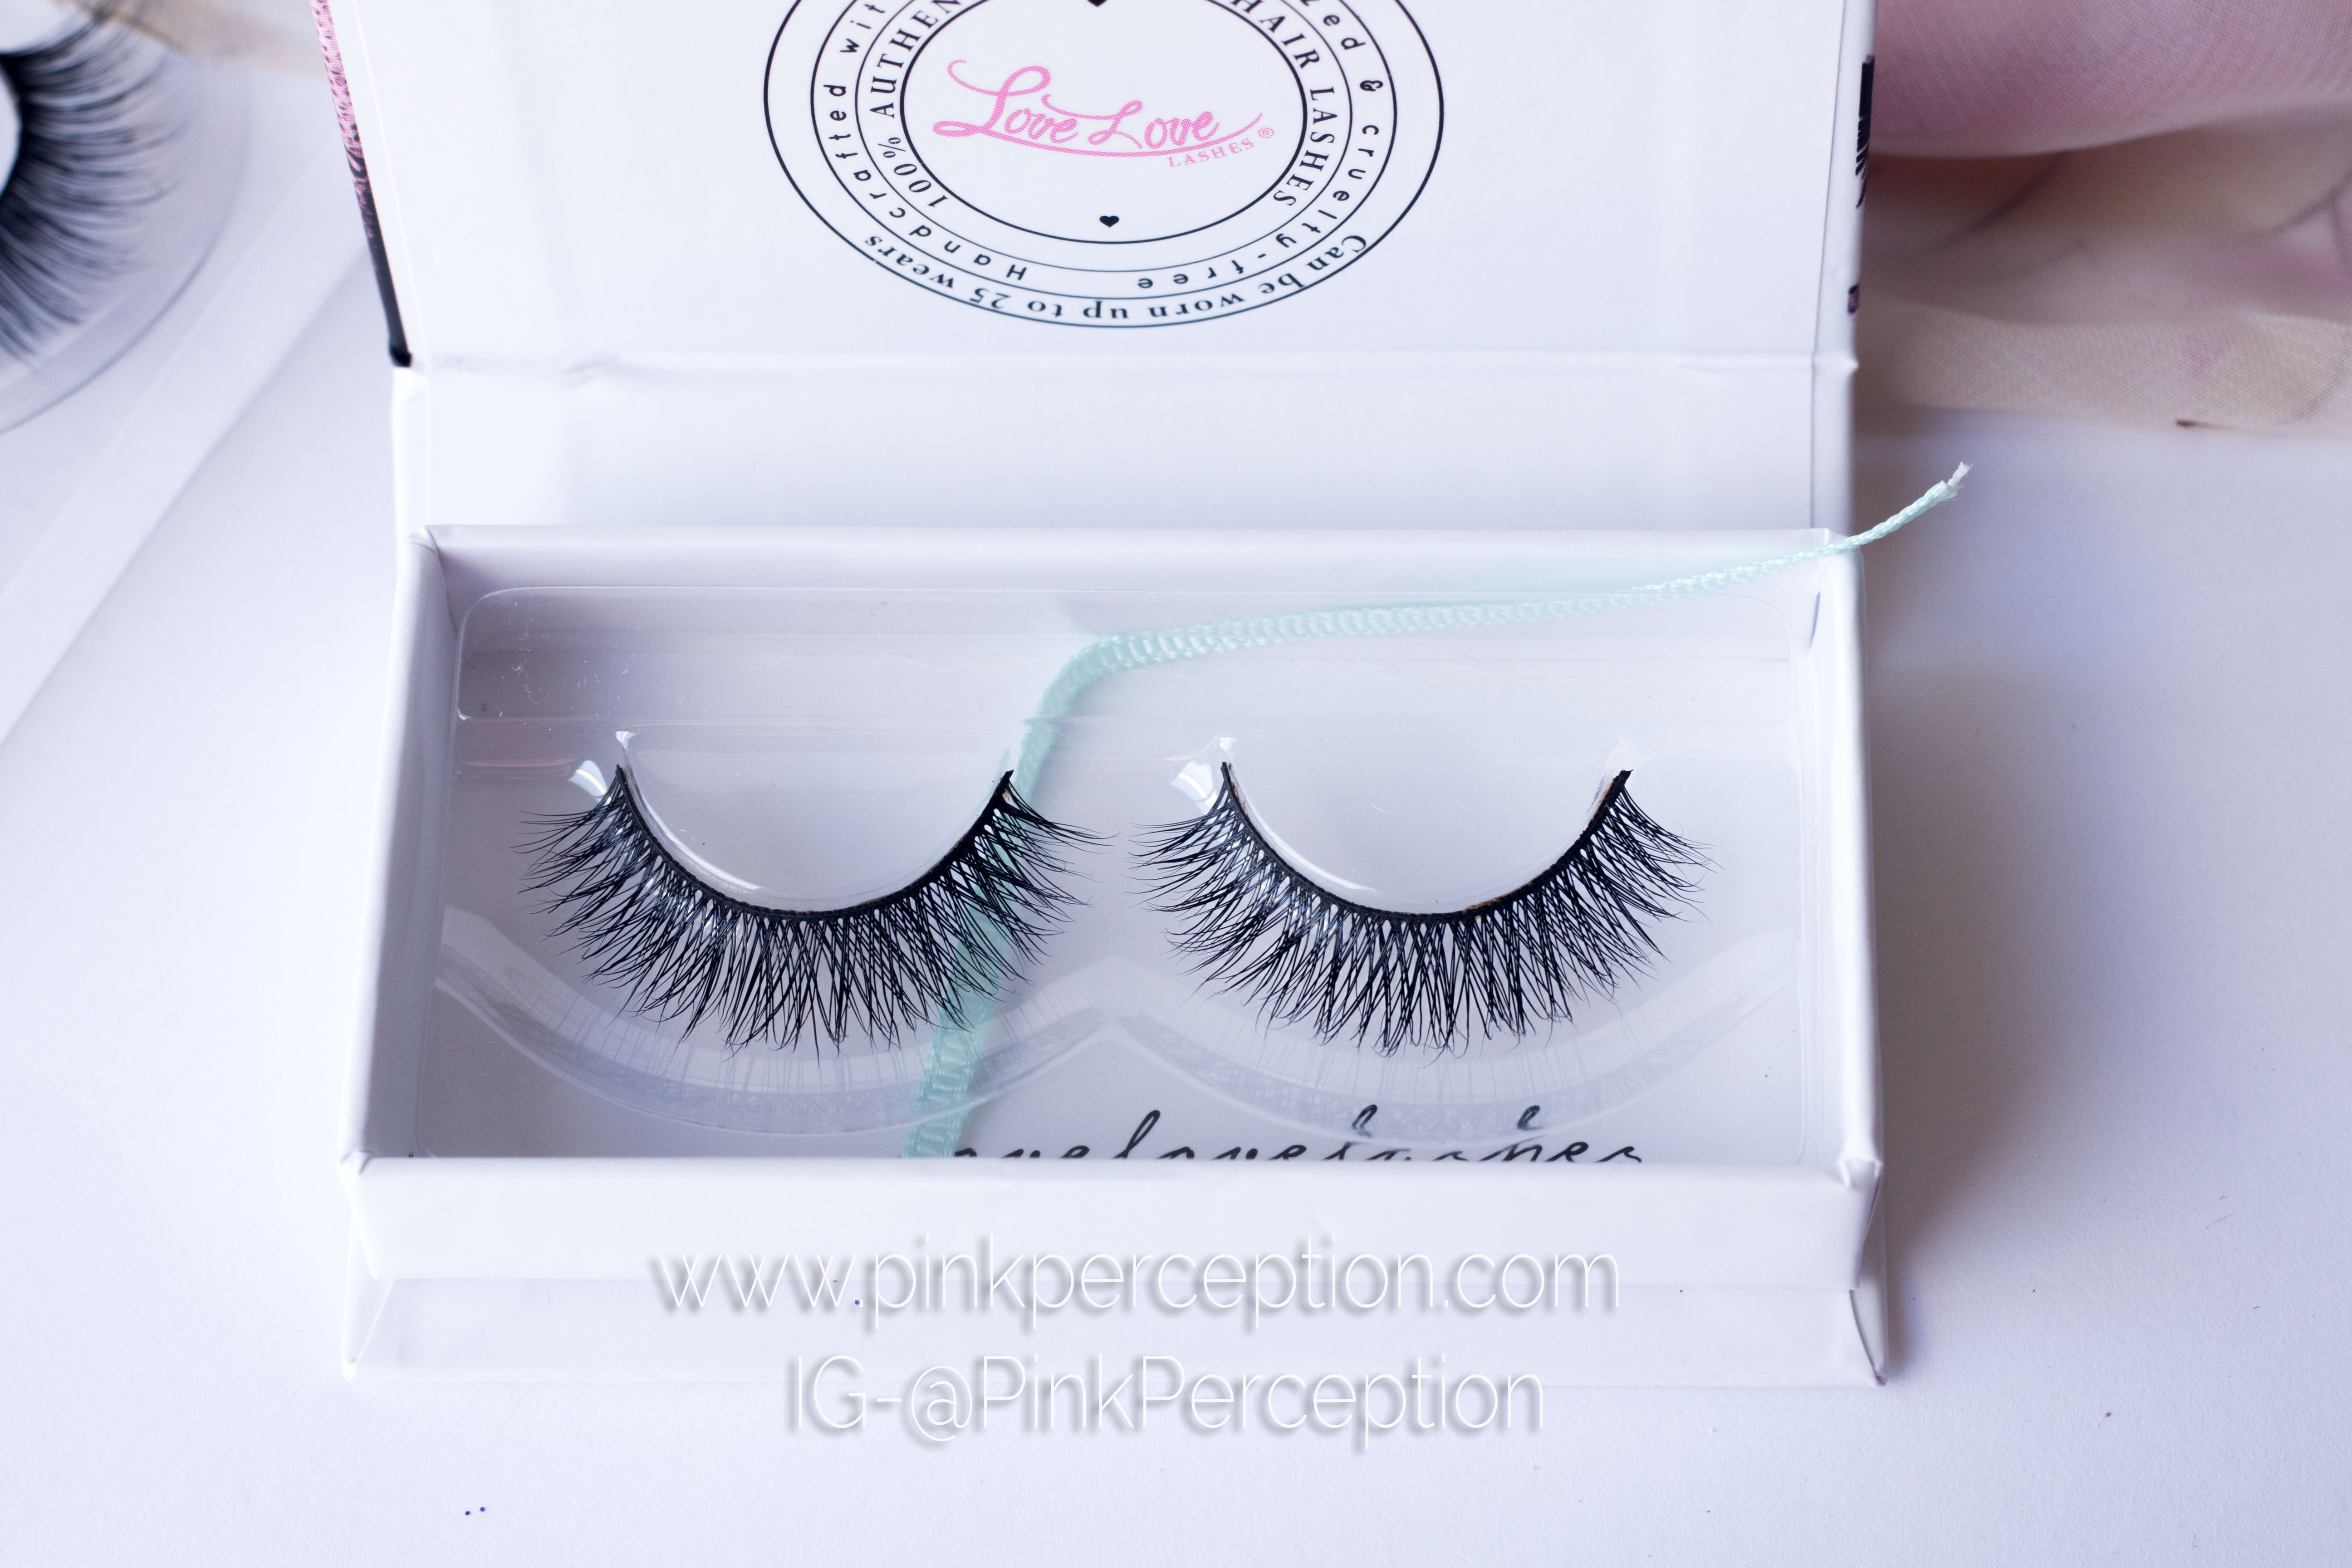 sensual lashes lovelove lashes pinkperception